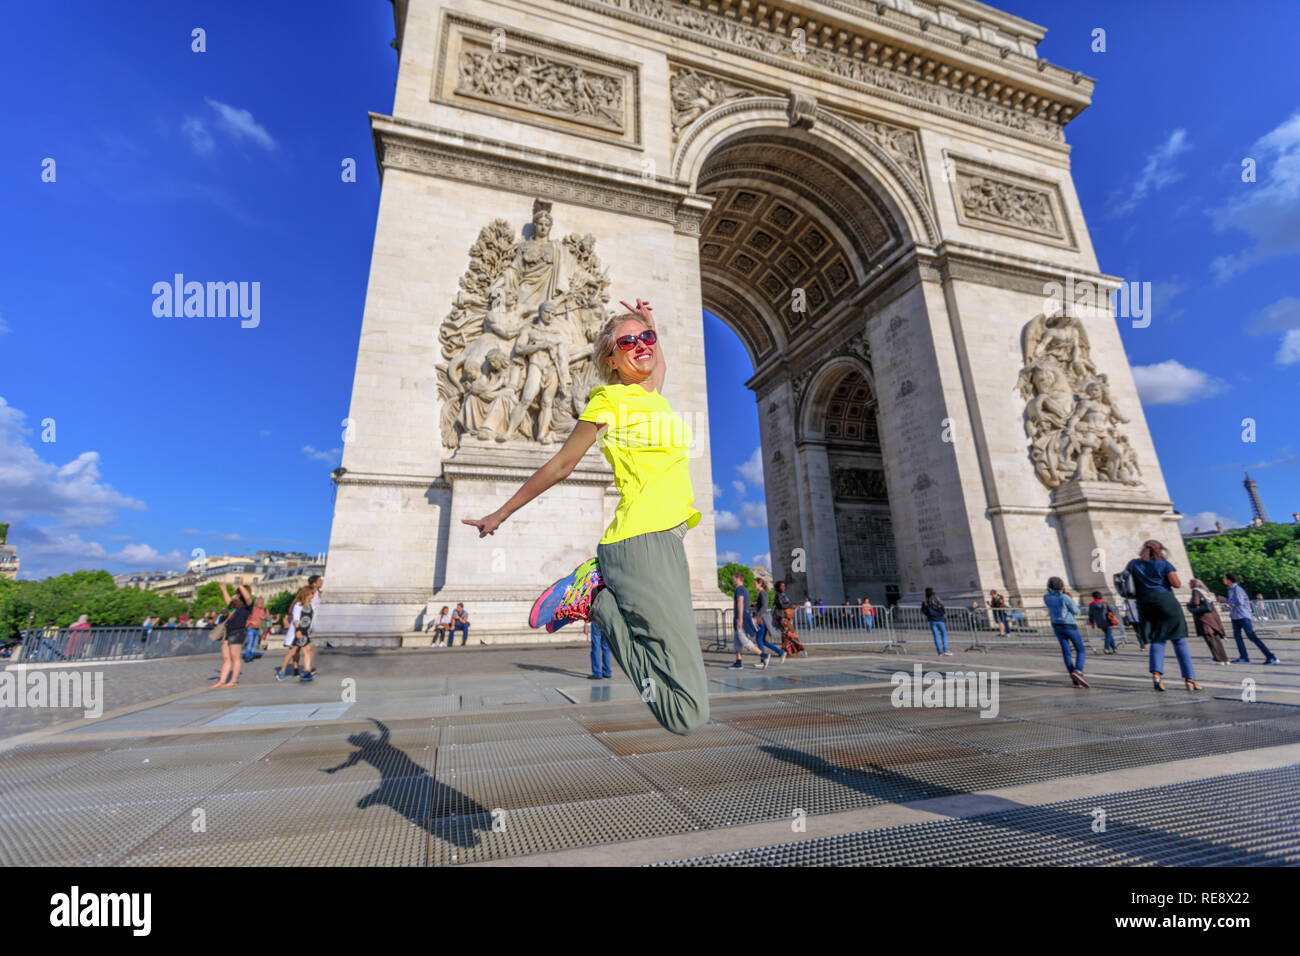 Woman with yellow vest jumping at Arch of triumph. Popular landmark in Paris, France. Concept of happiness for the triumph of people's protests. Gilets Jaunes are symbol of Parisian protest movement. - Stock Image